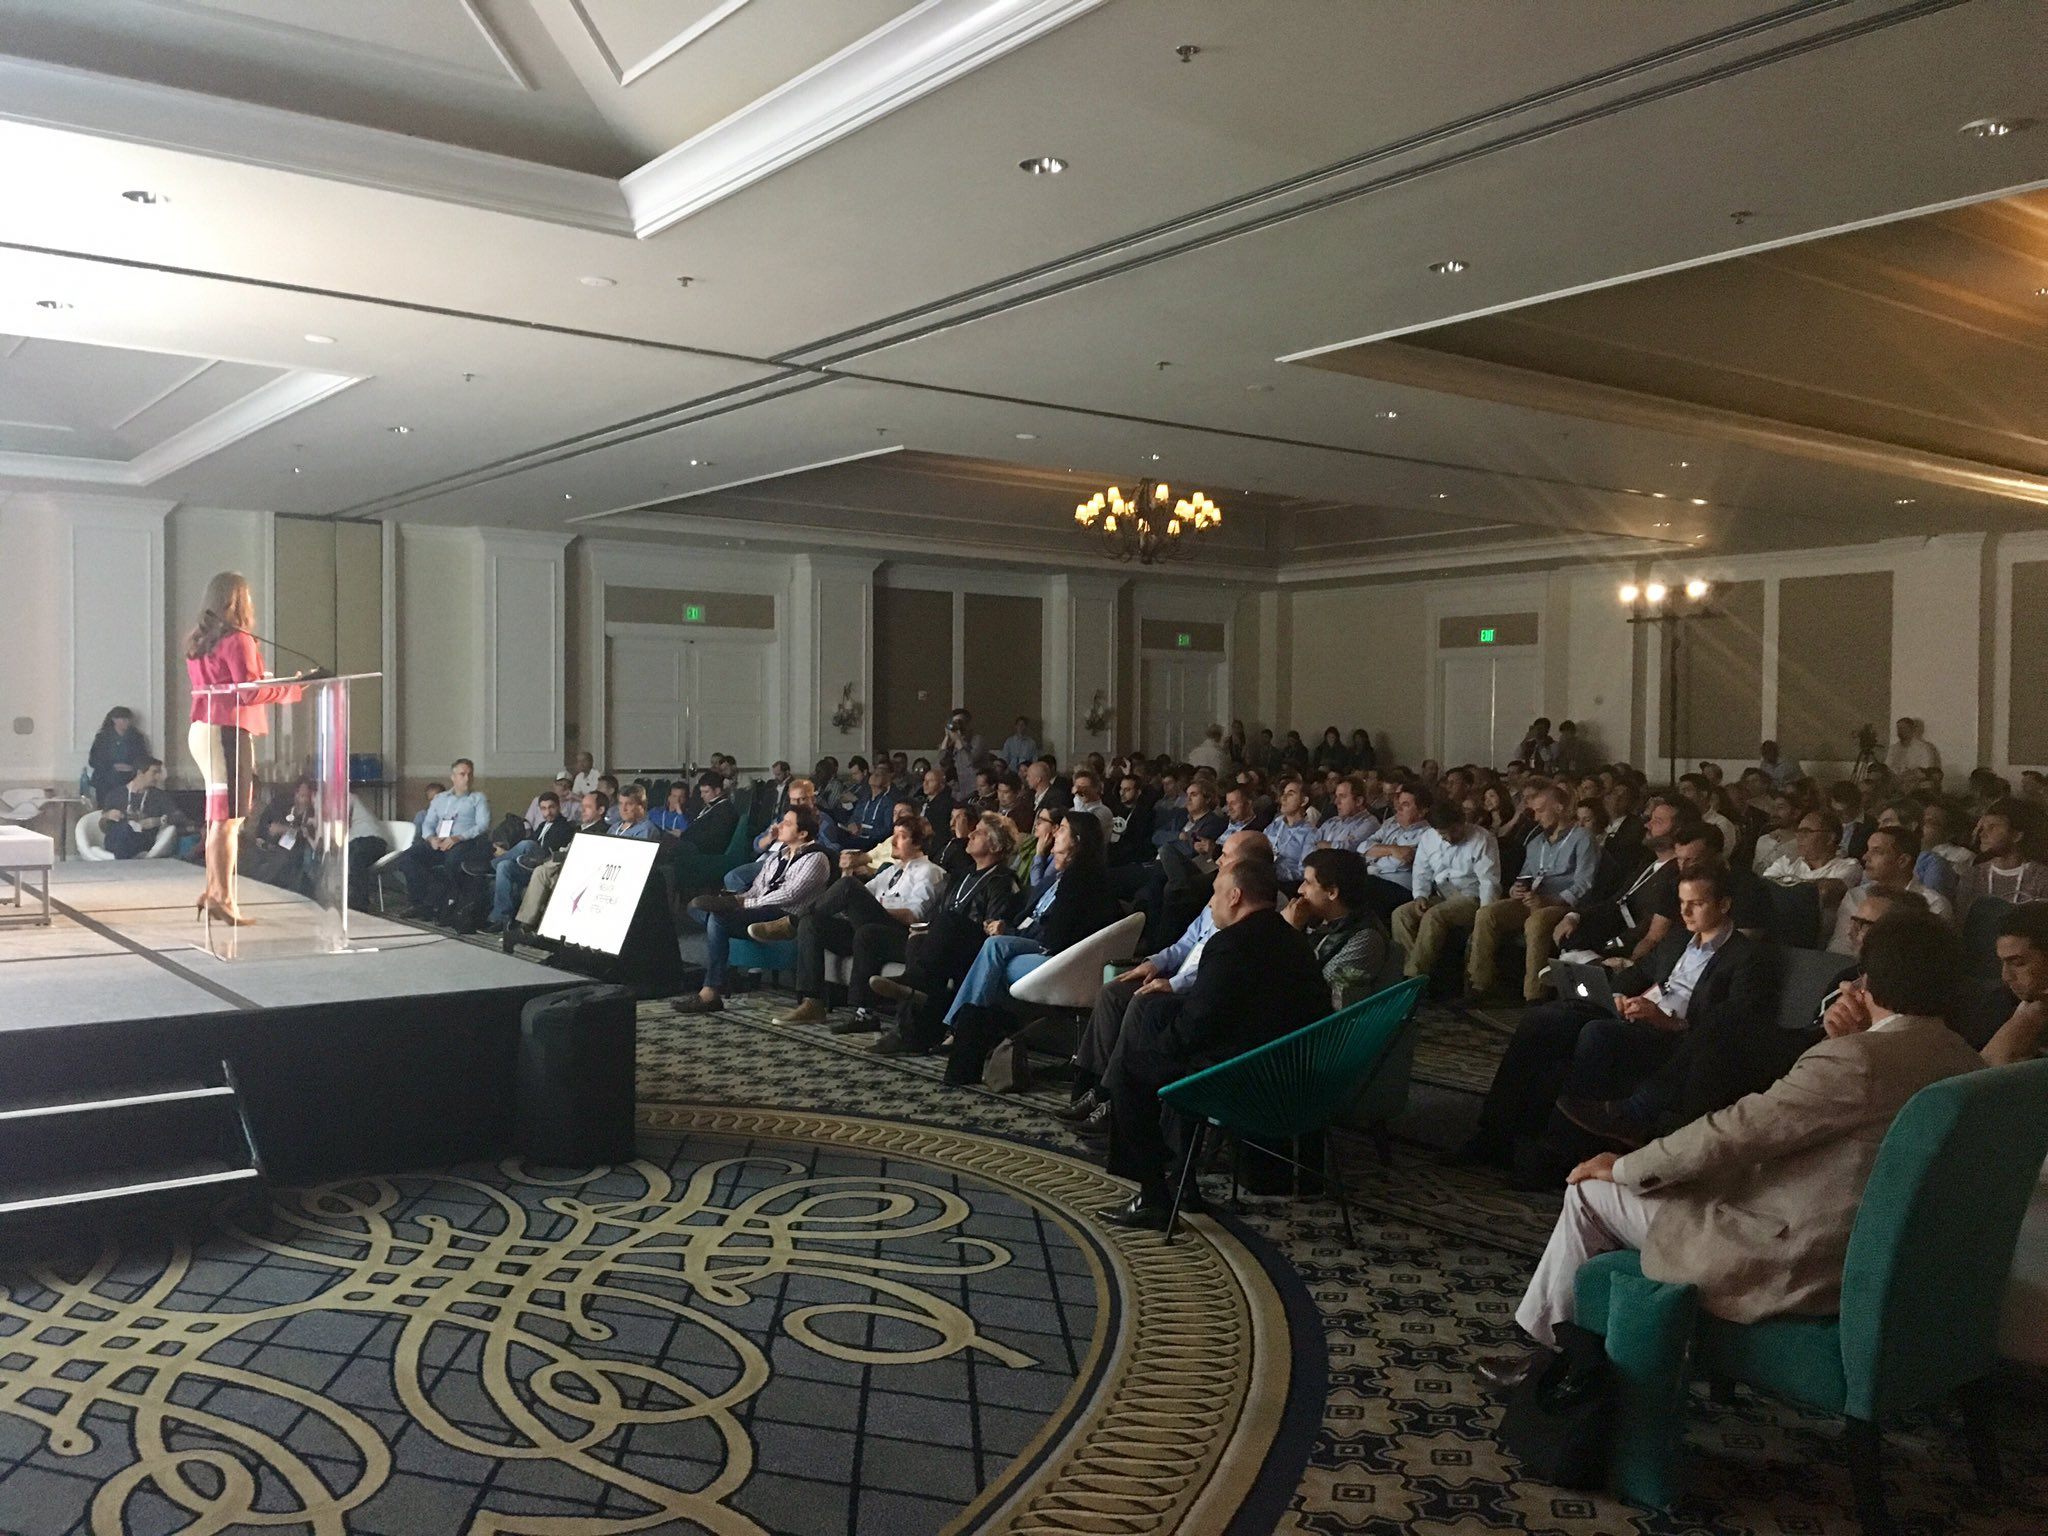 Packed house of #endeavorentrepreneurs representing nearly 30 countries as we open the #endeavorretreat on the main stage https://t.co/ZZBcsVh6Jf